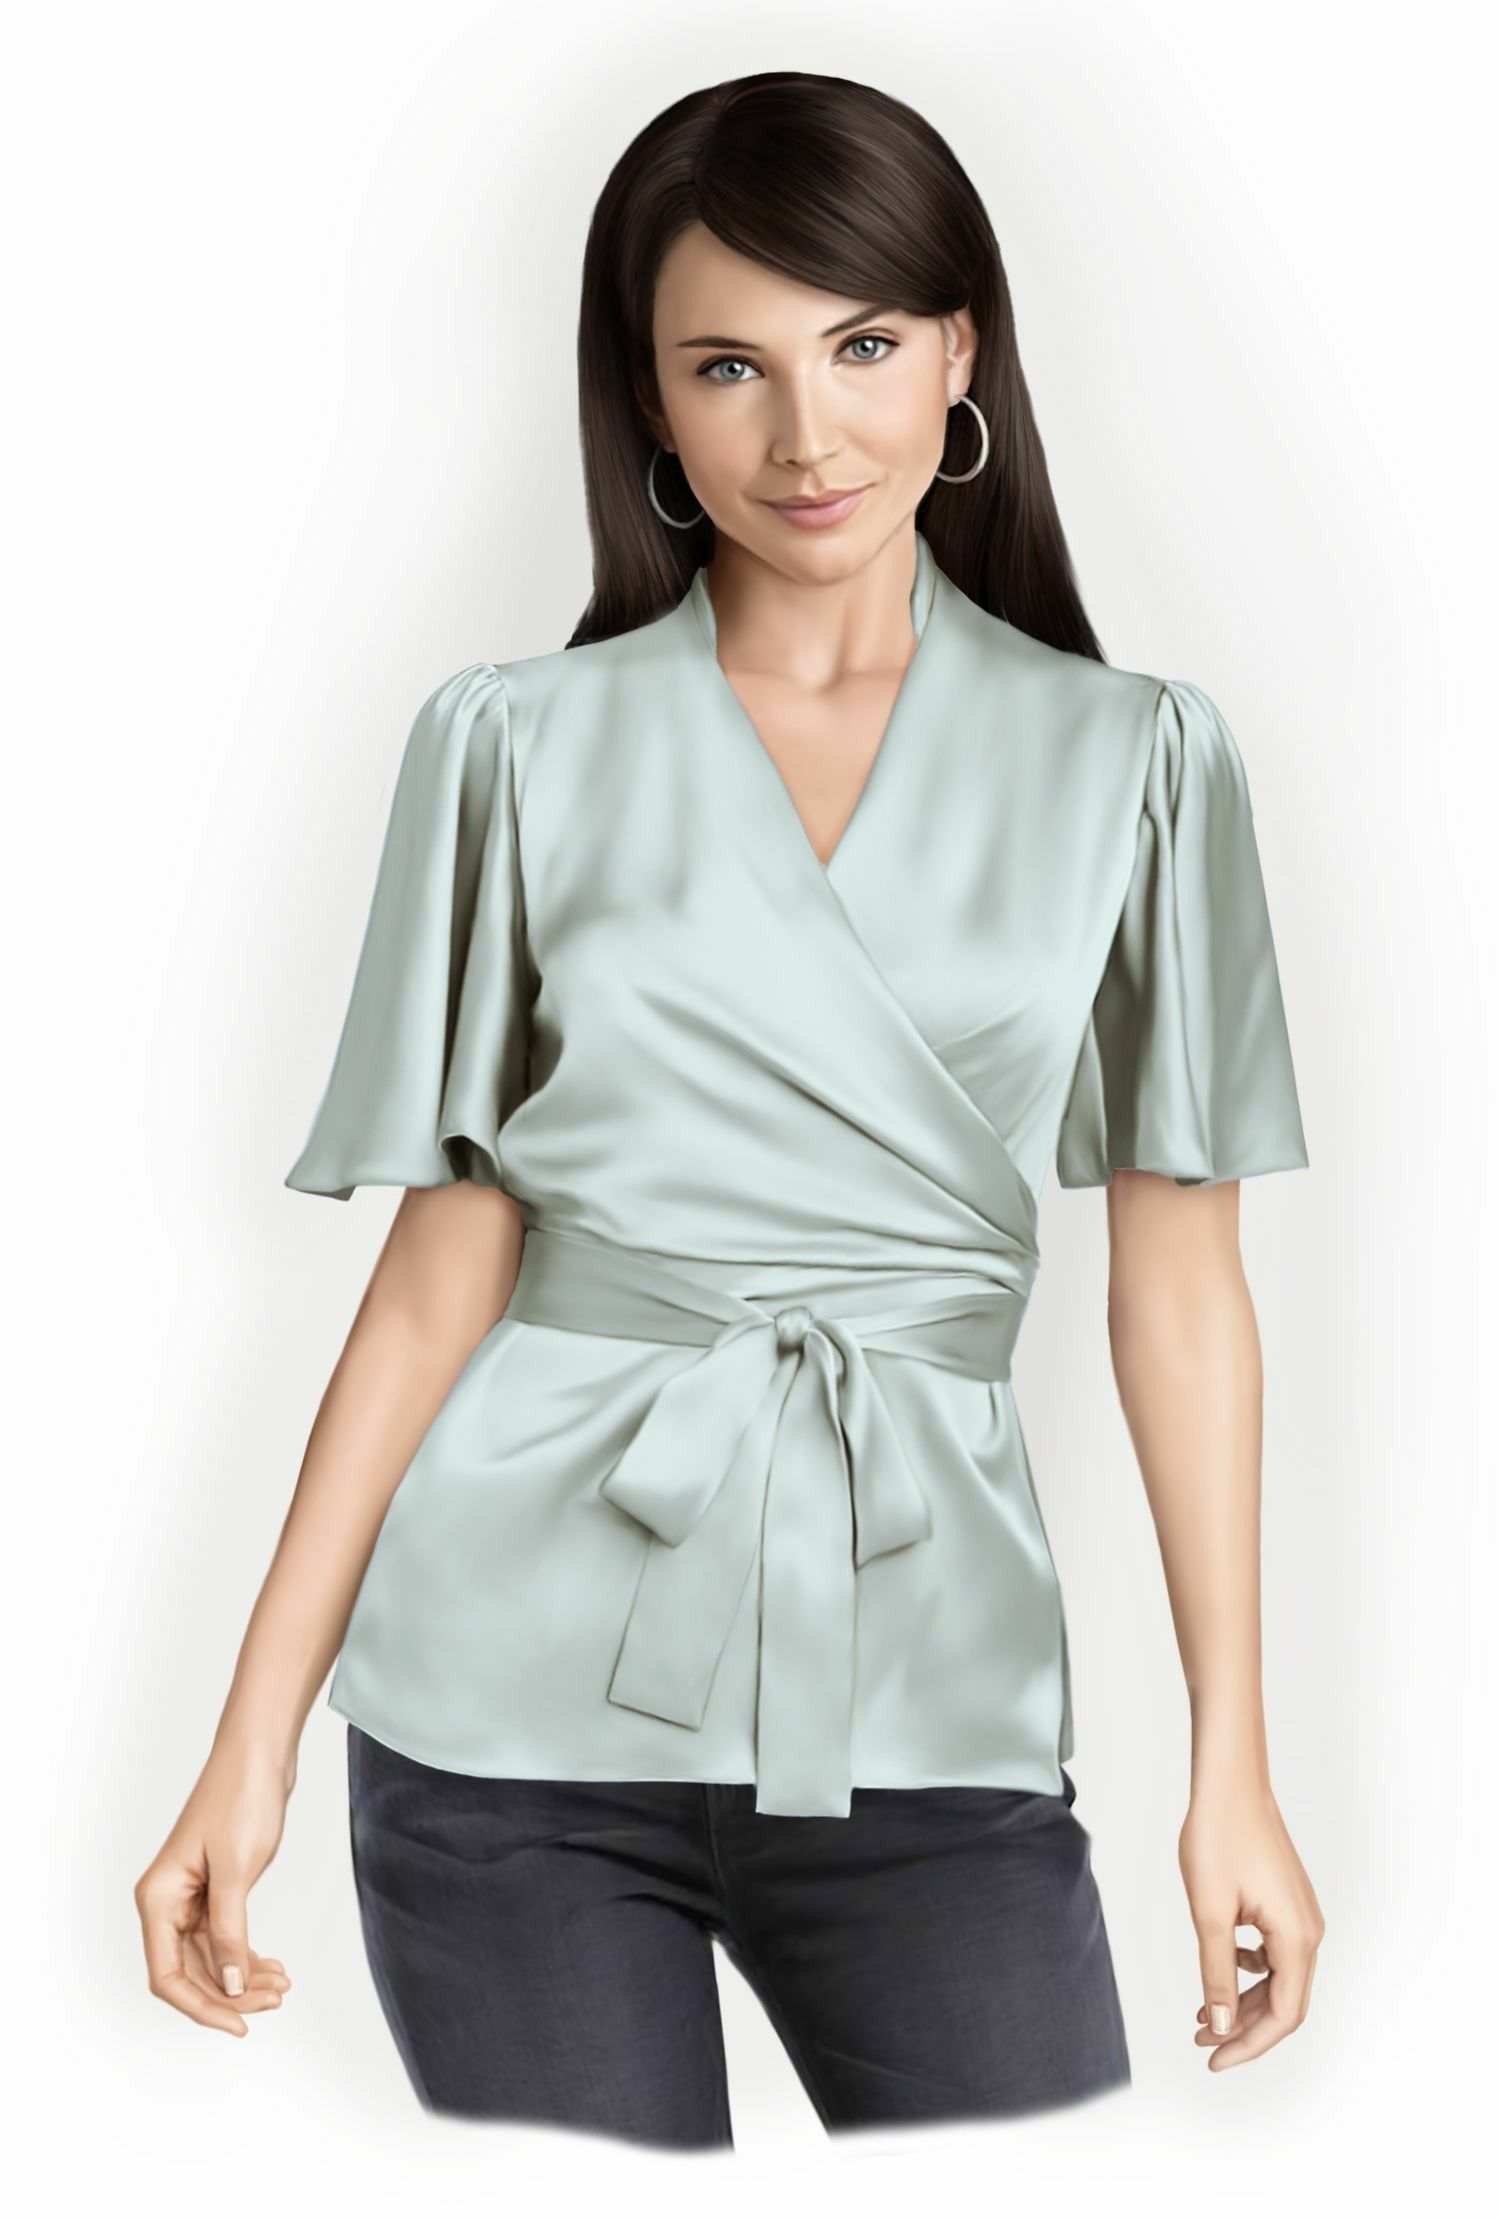 Blouse With Wrap - Sewing Pattern #5758. Made-to-measure sewing pattern from Lekala with free online download.